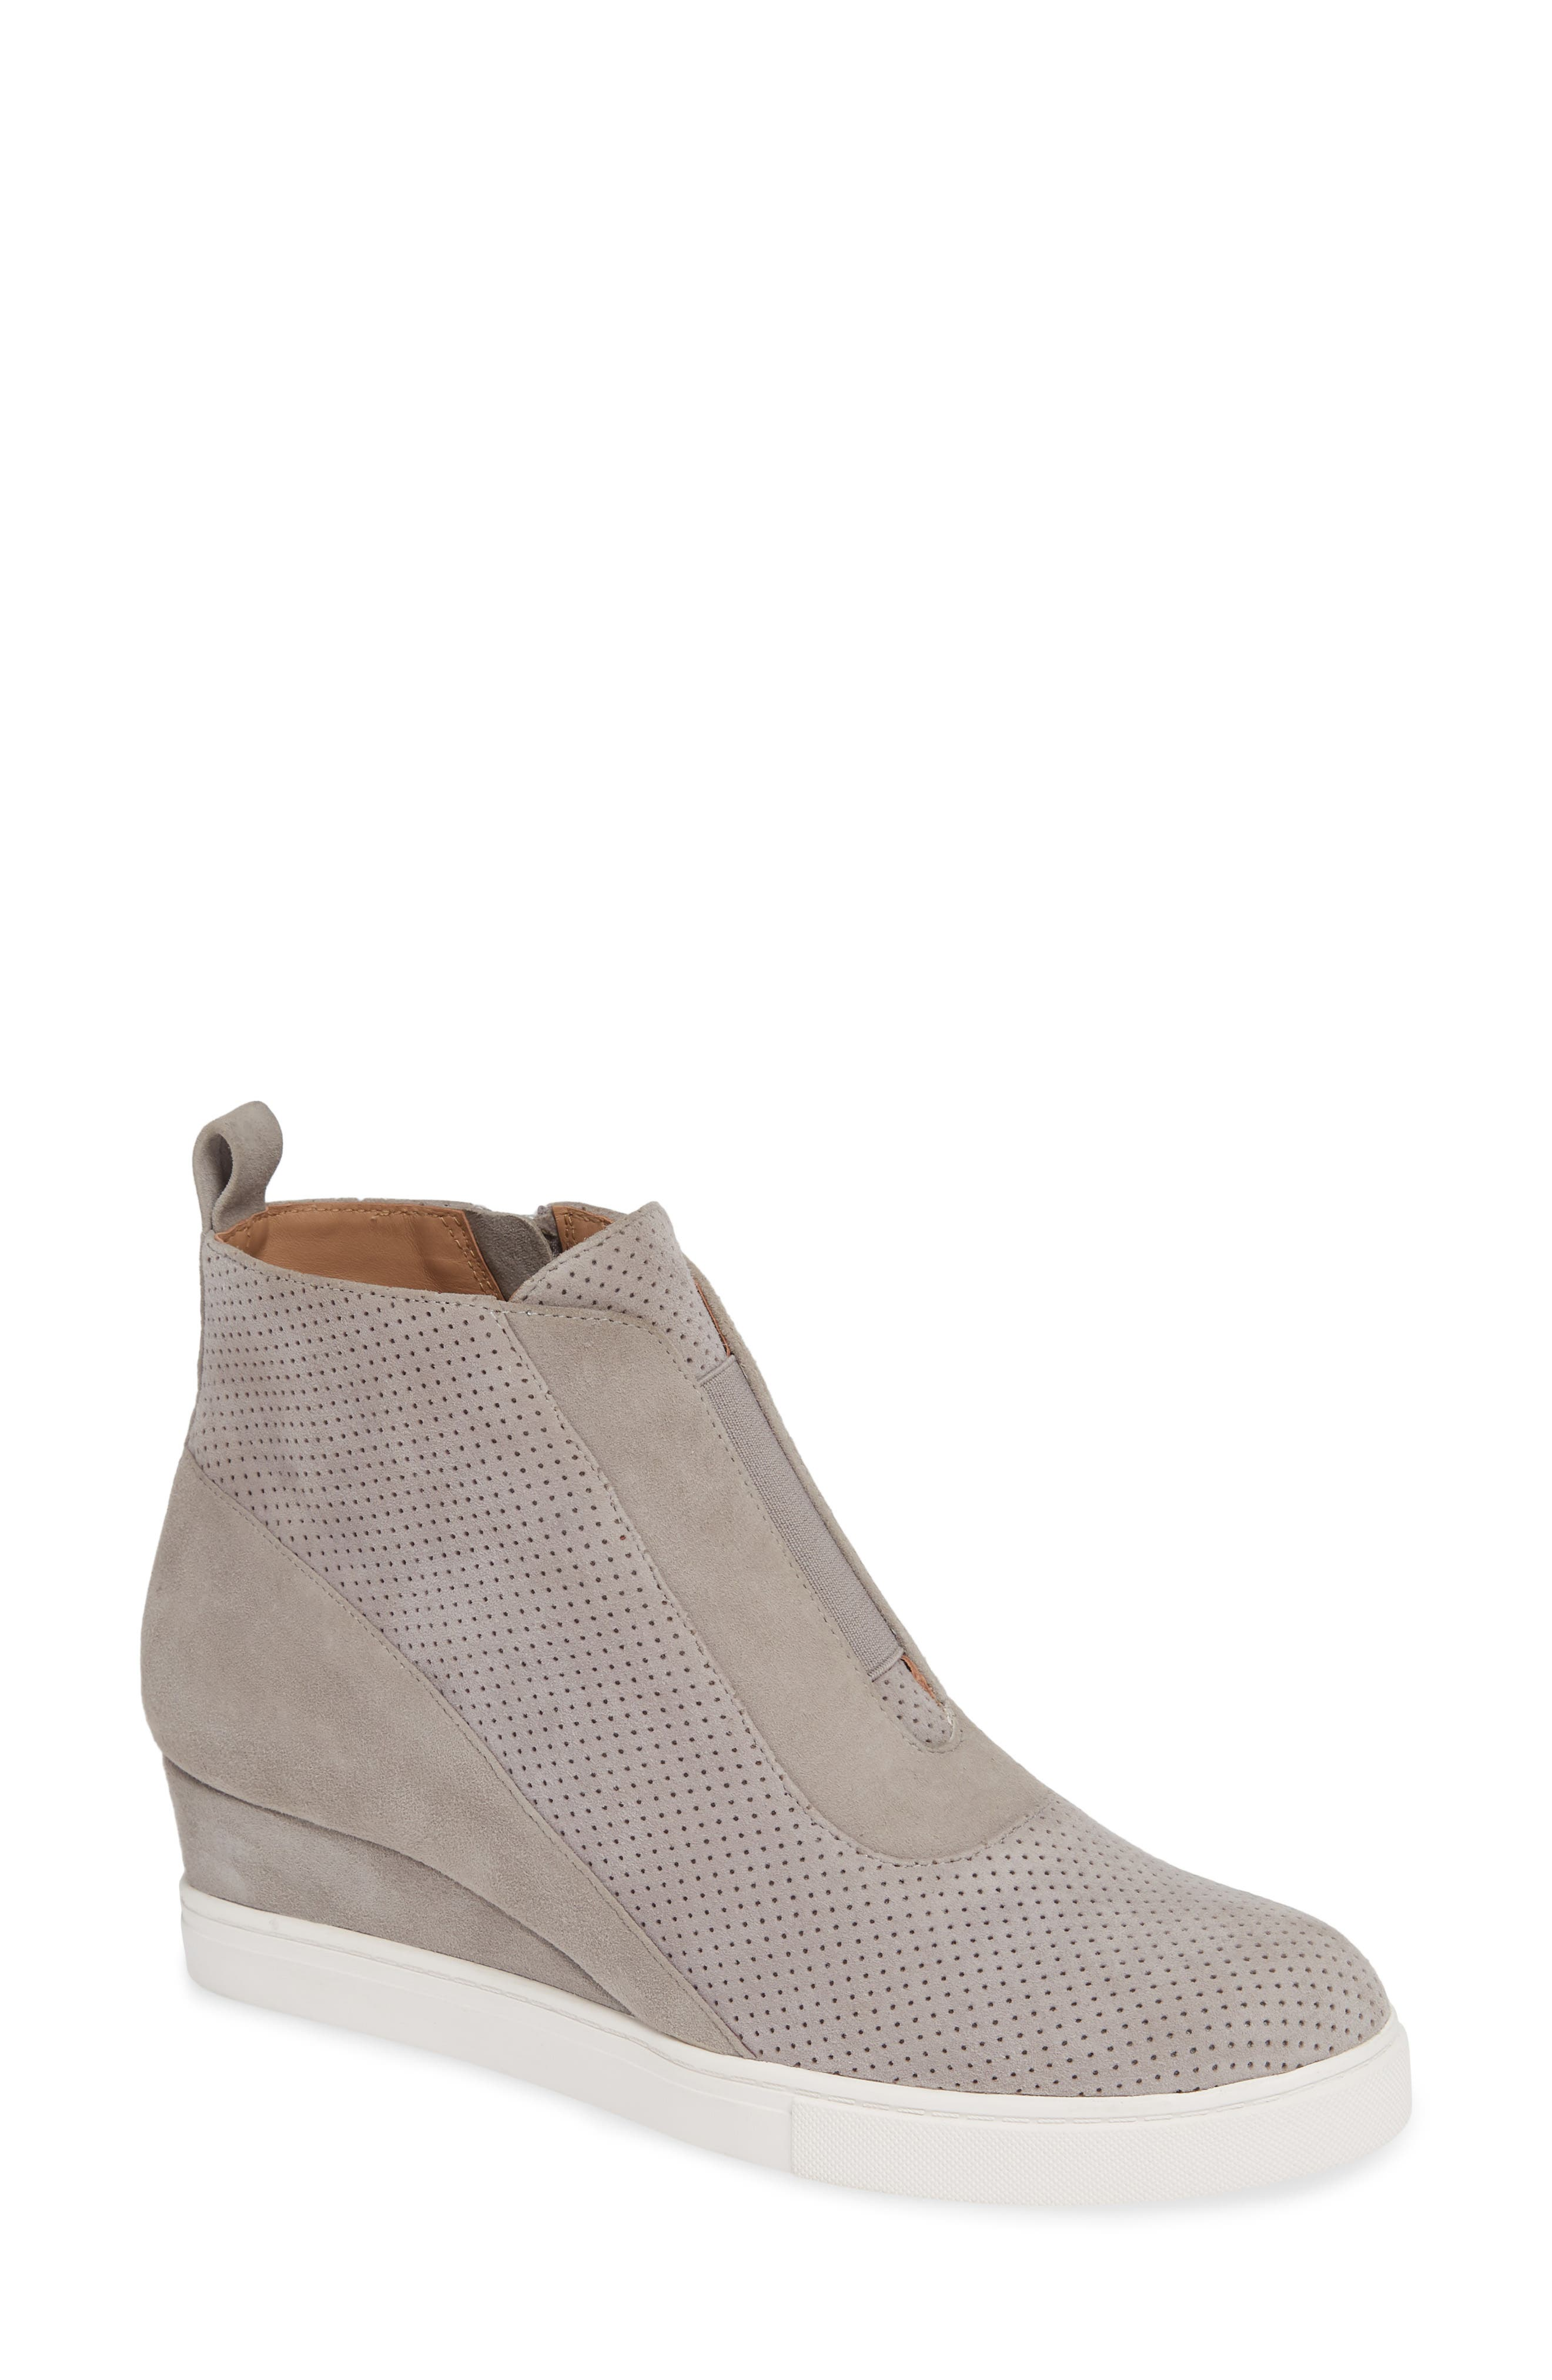 LINEA PAOLO, Anna Wedge Sneaker, Main thumbnail 1, color, ROCK PER SUEDE